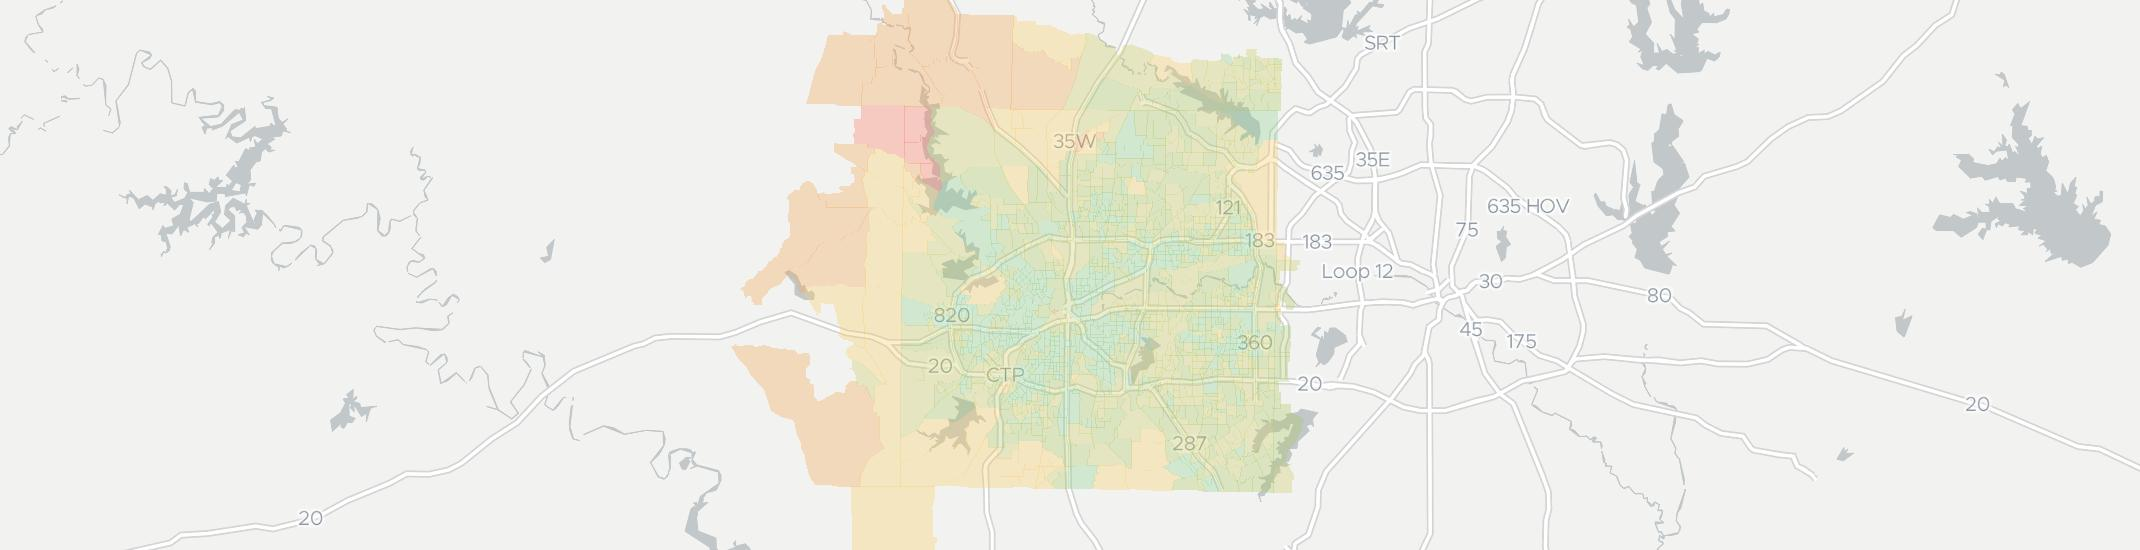 Fort Worth Internet Competition Map. Click for interactive map.